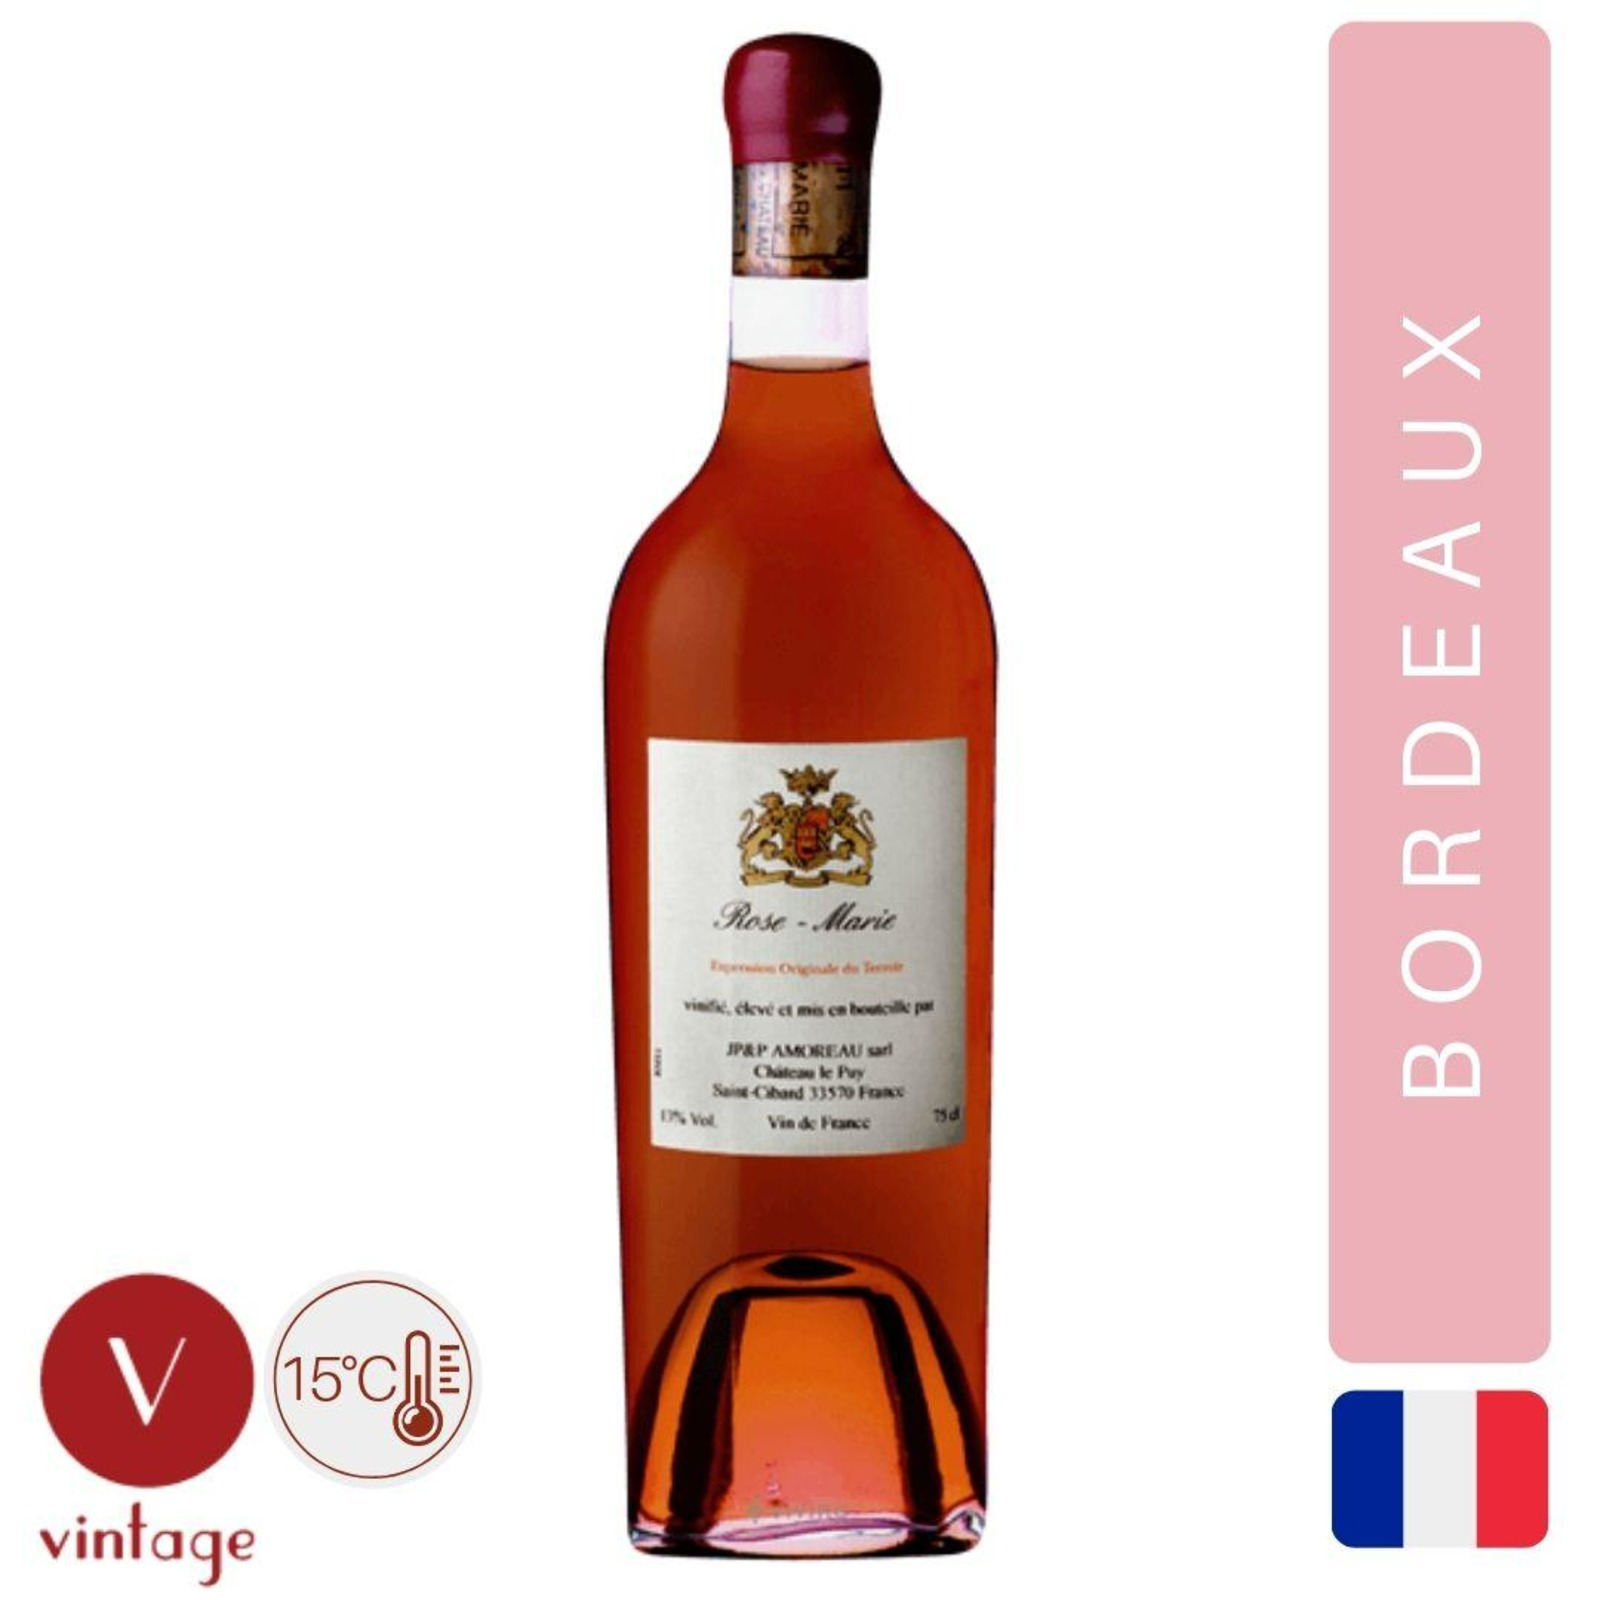 Chateau Le Puy - Rose Marie - Bordeaux Rose Wine